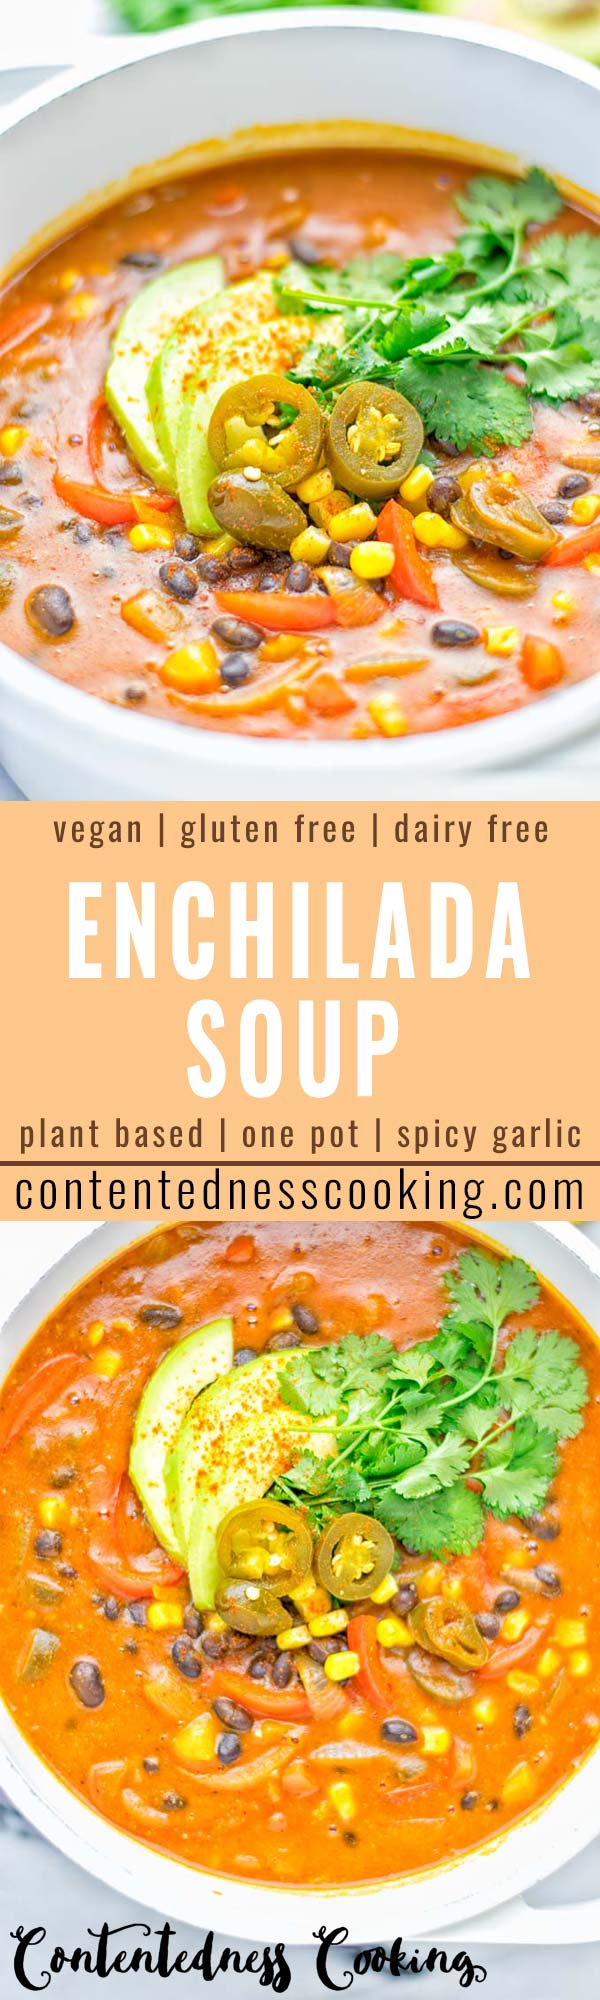 This Spicy Garlic Enchilada Soup is made in one pot, insanely delicious and super easy to make. Naturally vegan, gluten free and amazing for dinner, lunch, meal prep and work lunch. Try it now you won't believe how easy it is! #vegan #glutenfree #dairyfree # vegetarian #enchilada #soup #dinner #lunch #mealprep #worklunchideas #onepotmeals #enchiladasoup #contentednesscooking